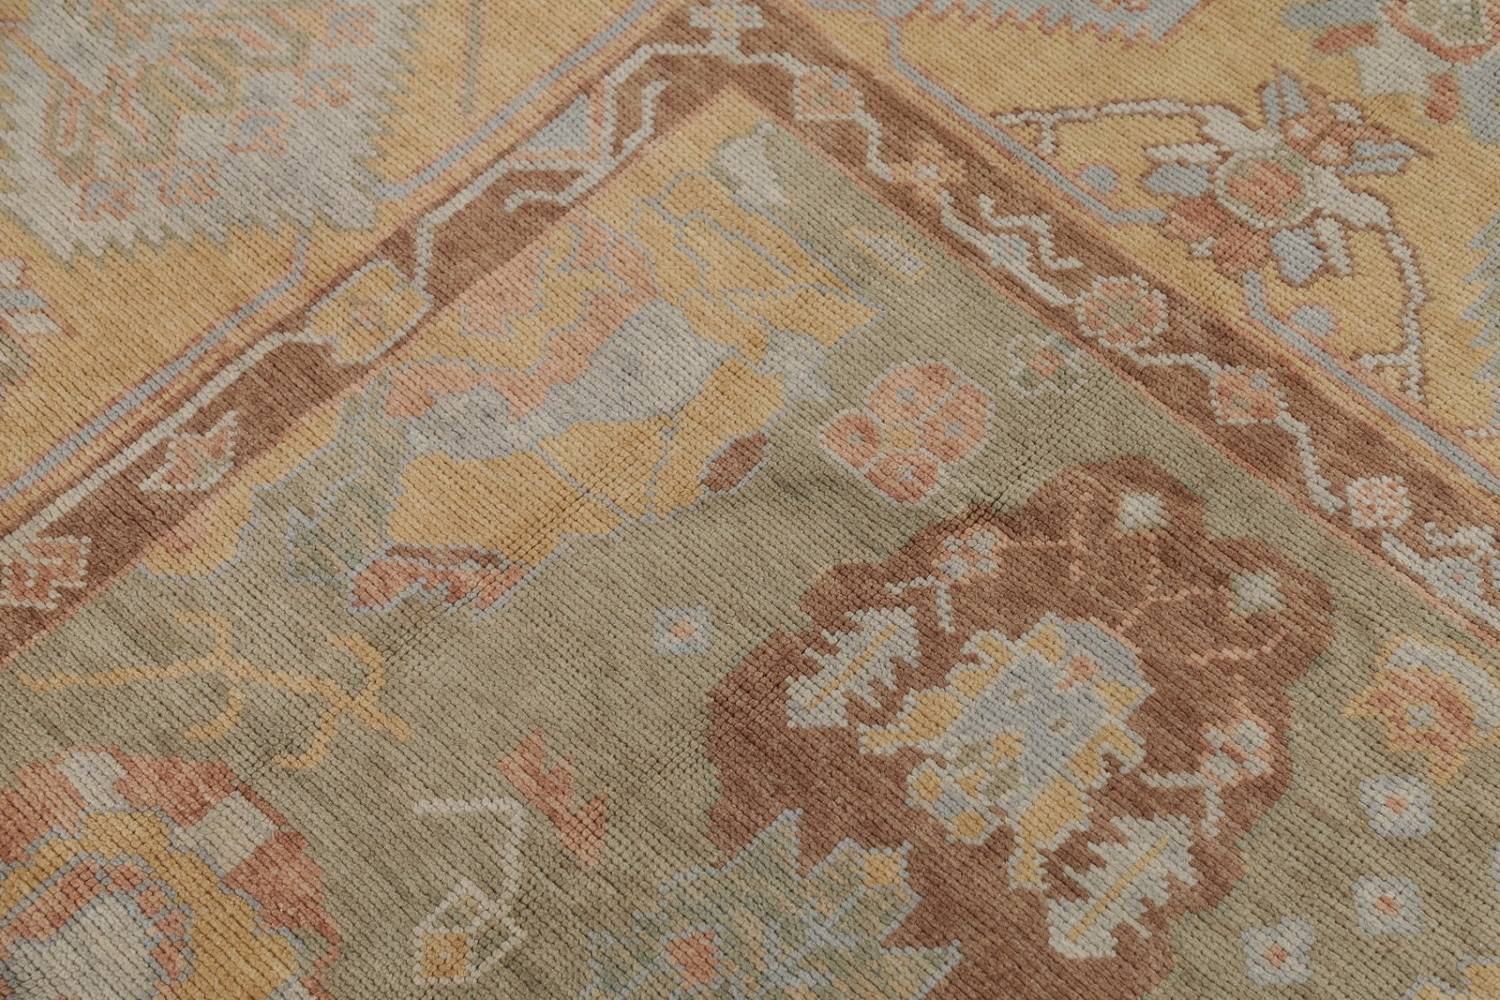 Vegetable Dye Muted Green Oushak Turkish Hand-Knotted Area Rug 9x12 image 10